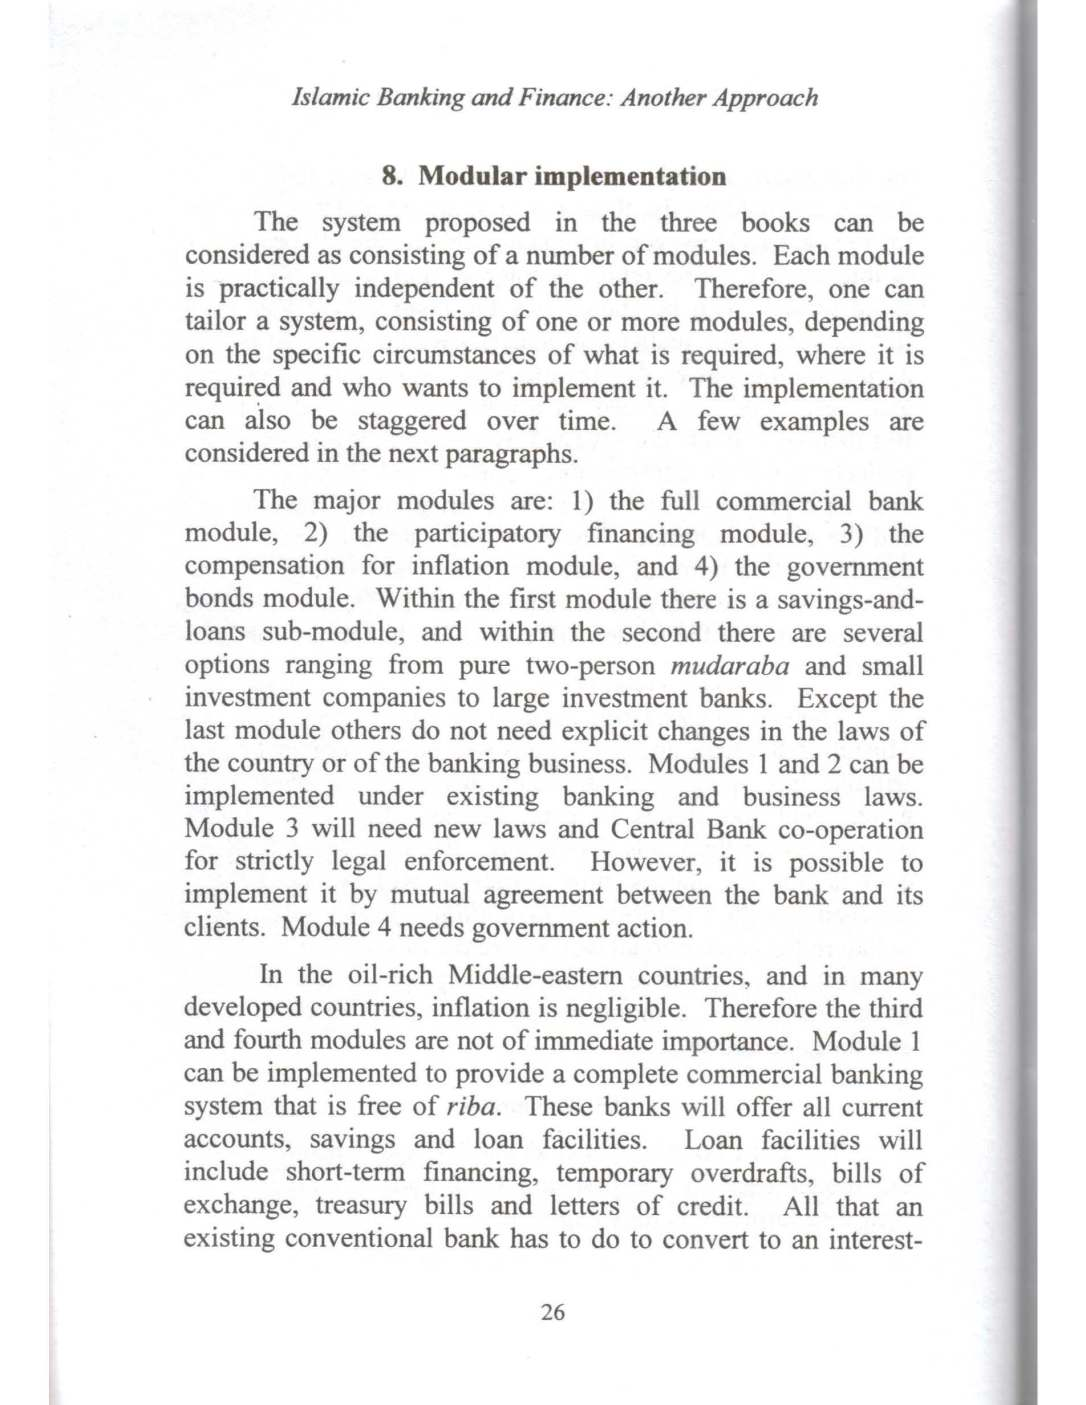 Islamic Banking and Finance - Another Approach_Page_27